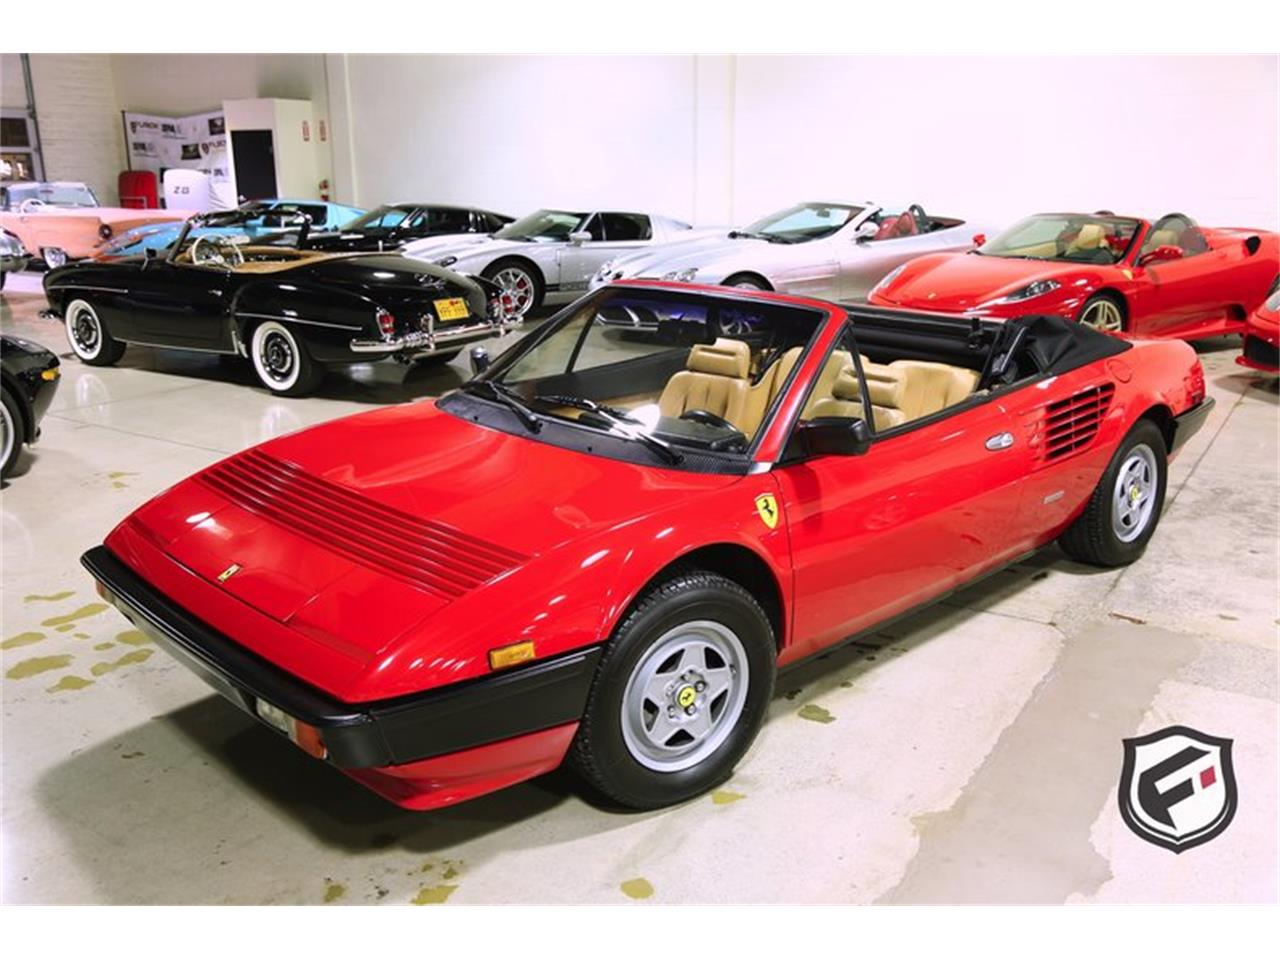 ferrari mondial window motor ferrari 208 328 355 348 lh door window motor 62302200 ebay window. Black Bedroom Furniture Sets. Home Design Ideas